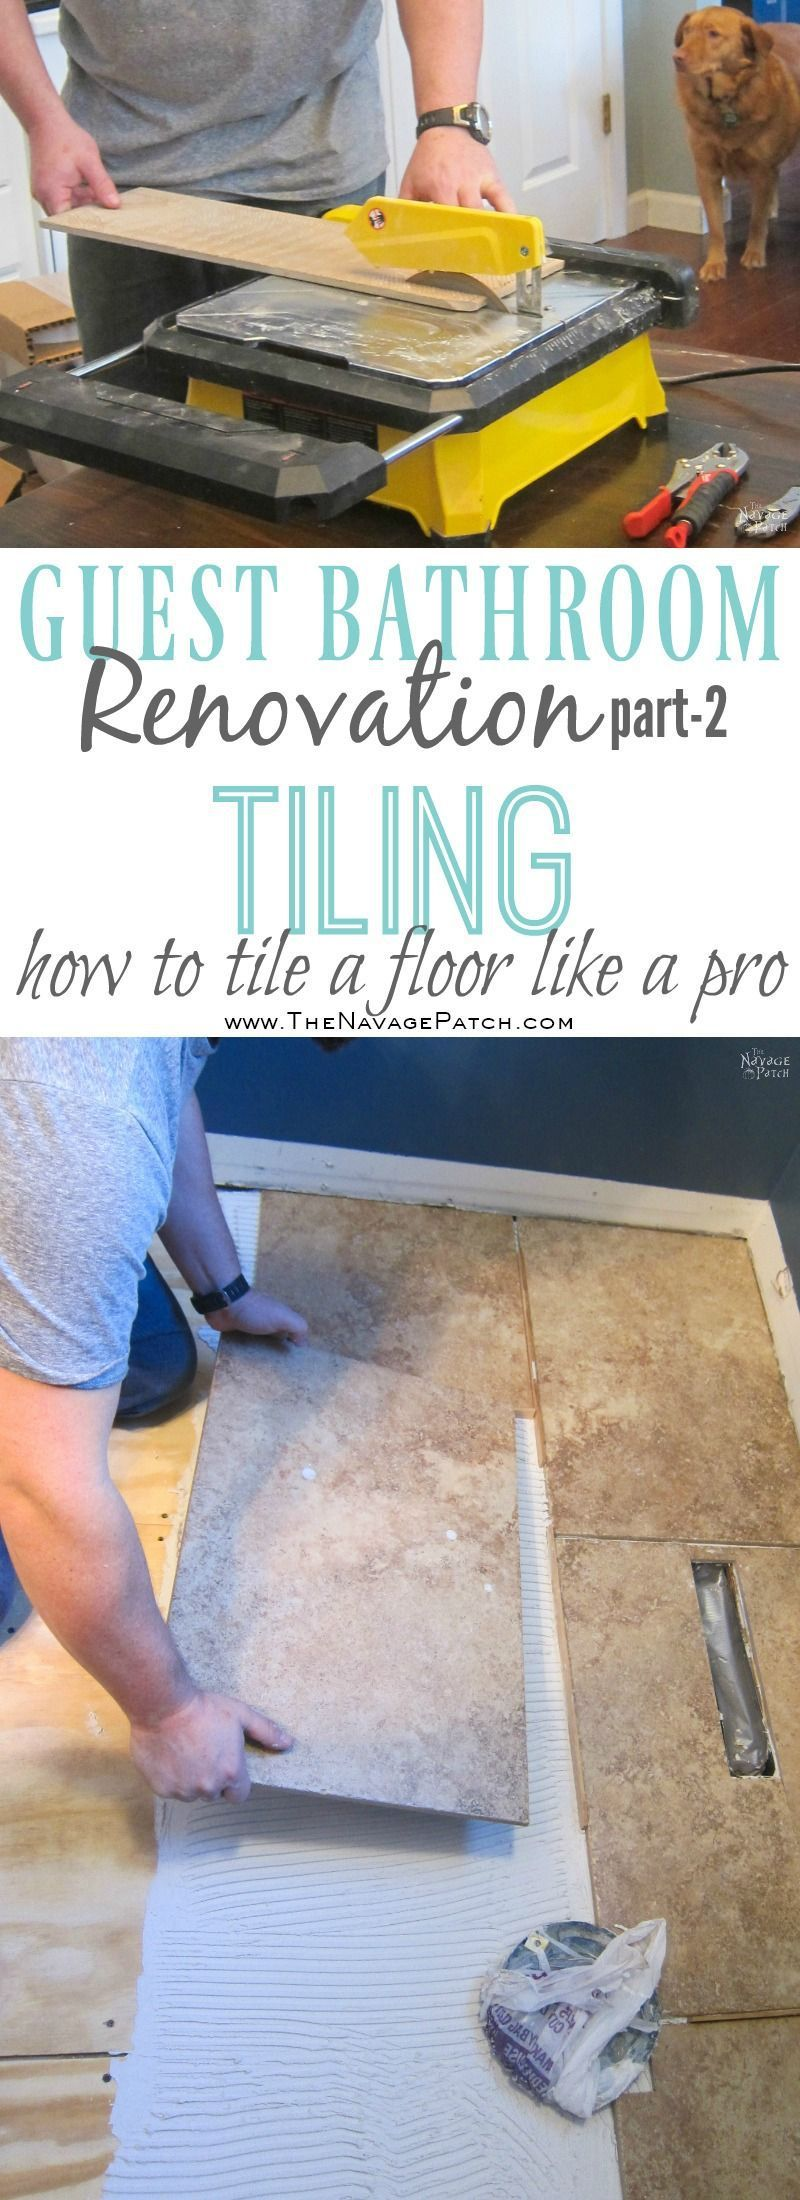 Guest bathroom renovation how to lay tile tile patterns